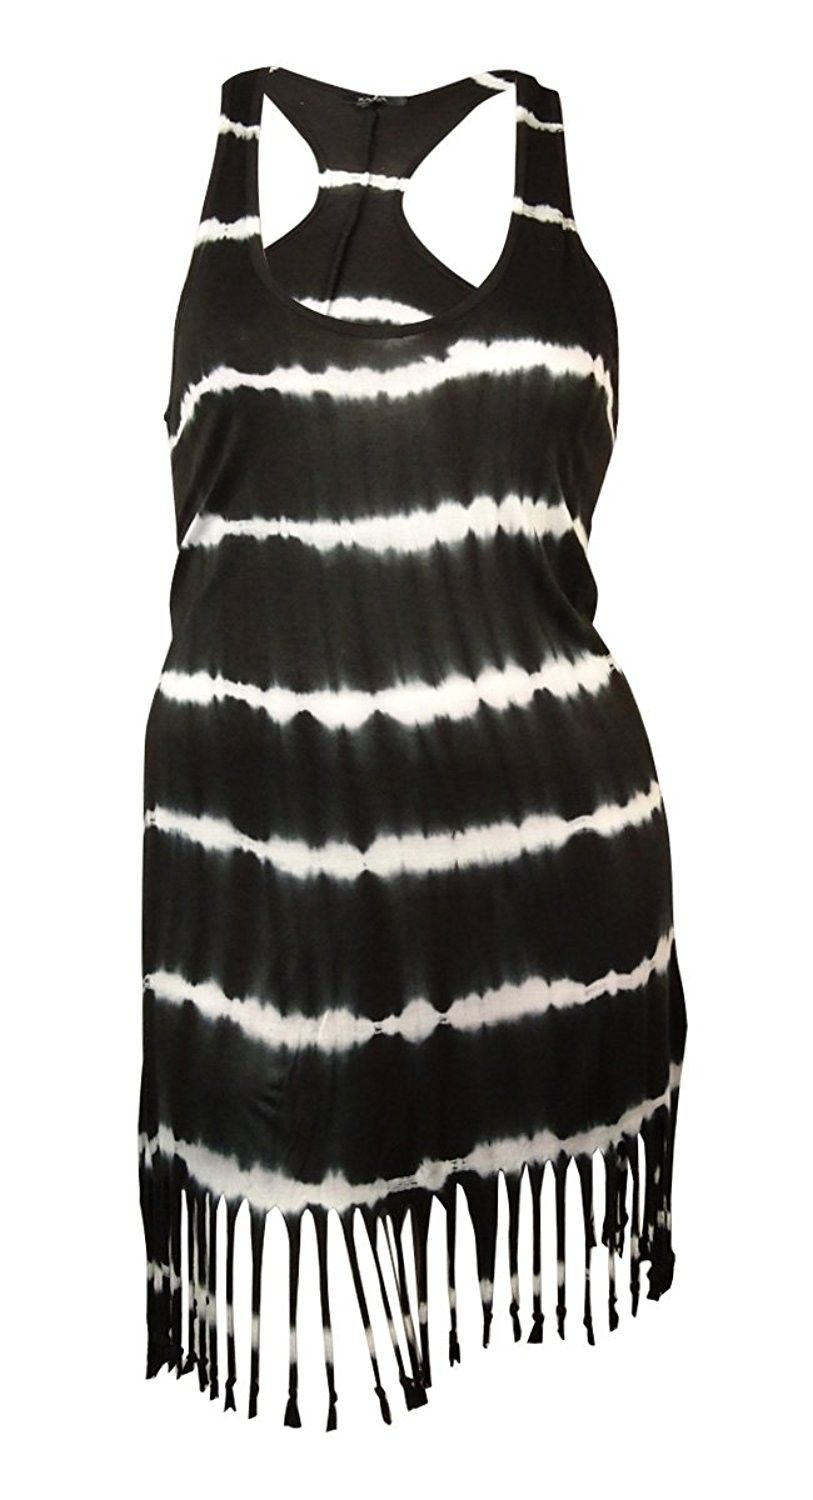 946ed4e7cc051 Women's Clothing, Swimsuits & Cover Ups, Cover-Ups,Women's Tie-Dyed Fringed  Racerback Dress Cover-Up - Black - CA12HRQK8H1 #Fashion #Swimsuits #CoverUps  ...